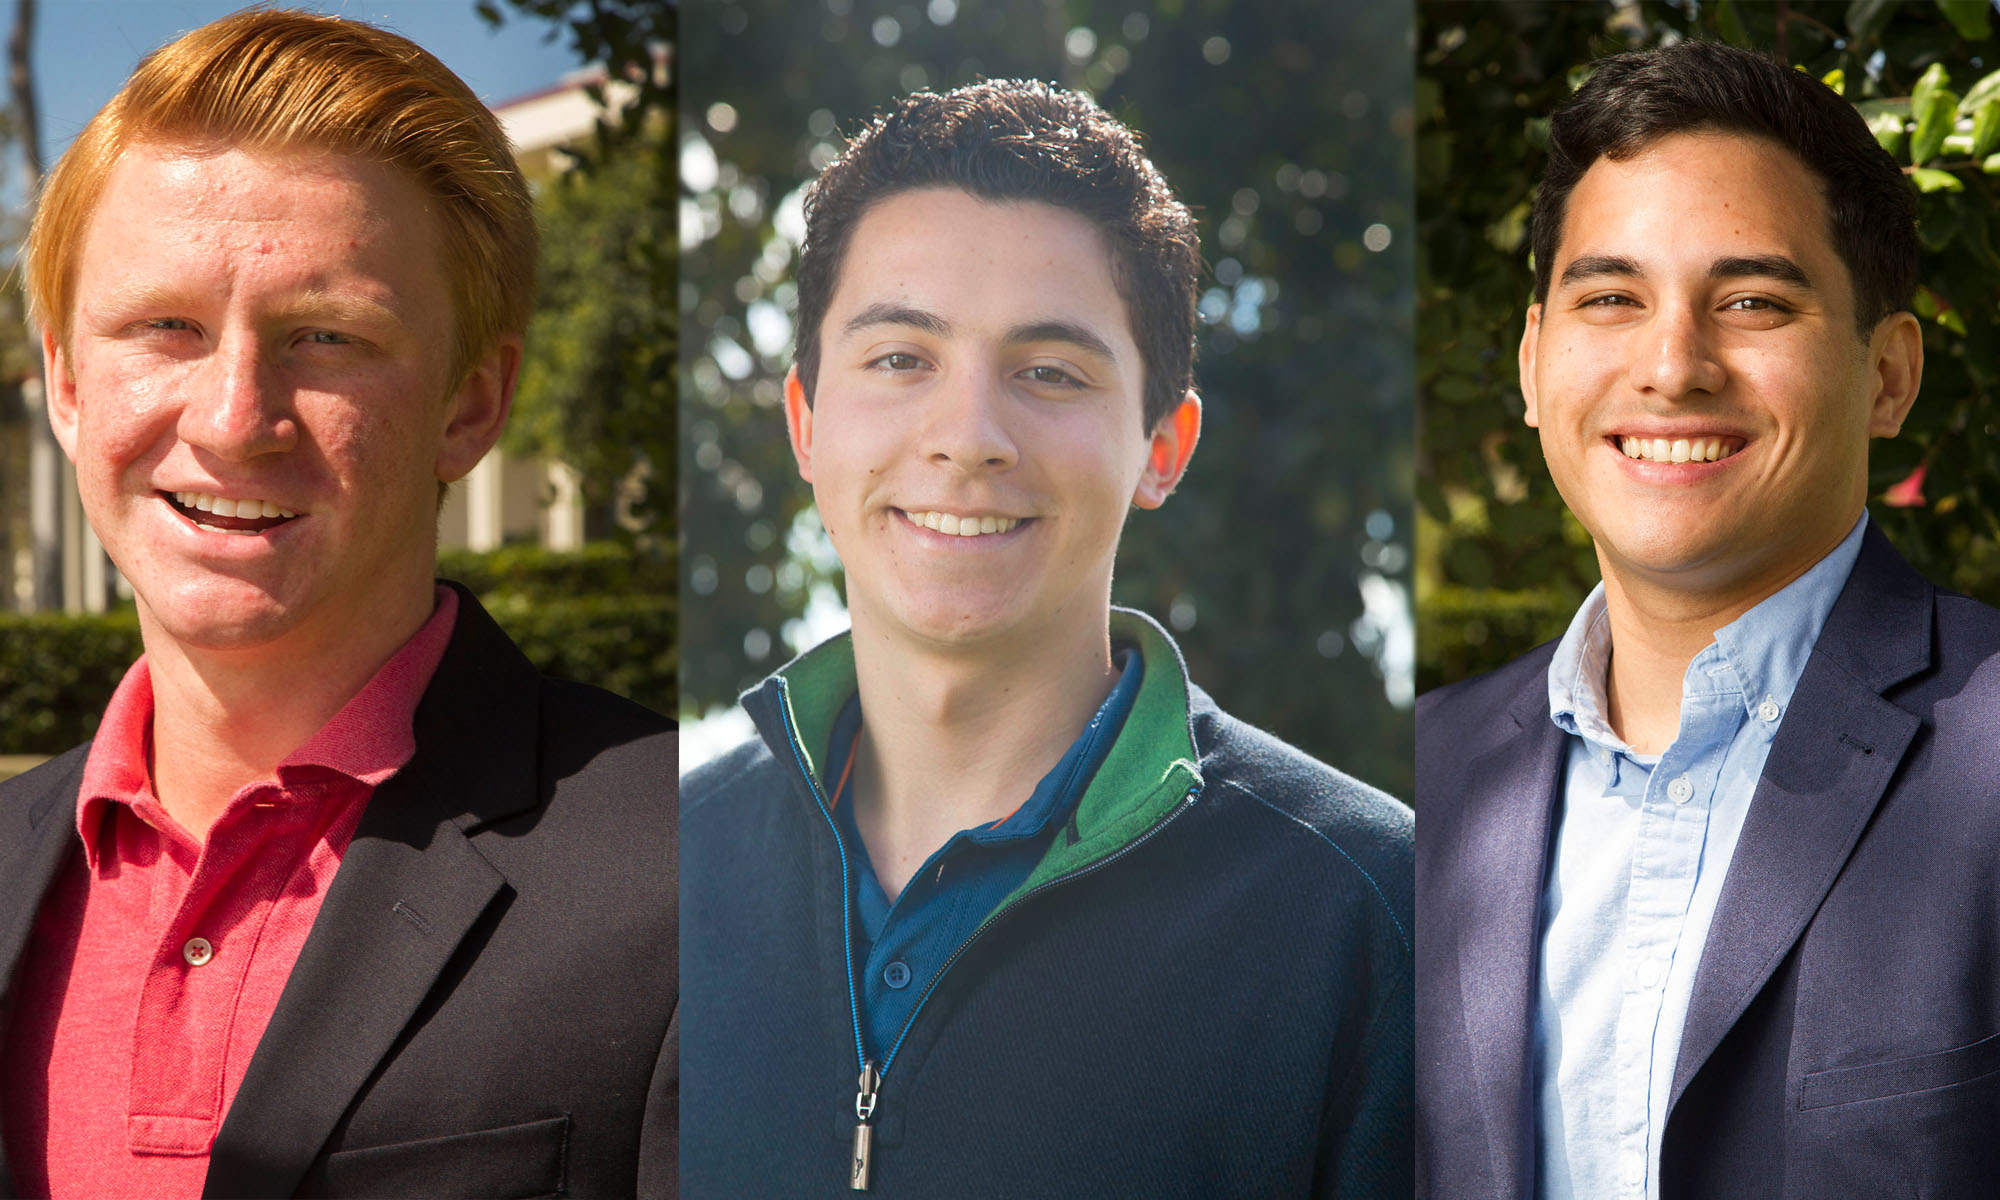 The Channels endorses these candidates from Left, Student Trustee Candidate Parker Mitchell, Presidential Candidate Cristian Walk, and Matthew Esguerra, running for vice president of external affairs.